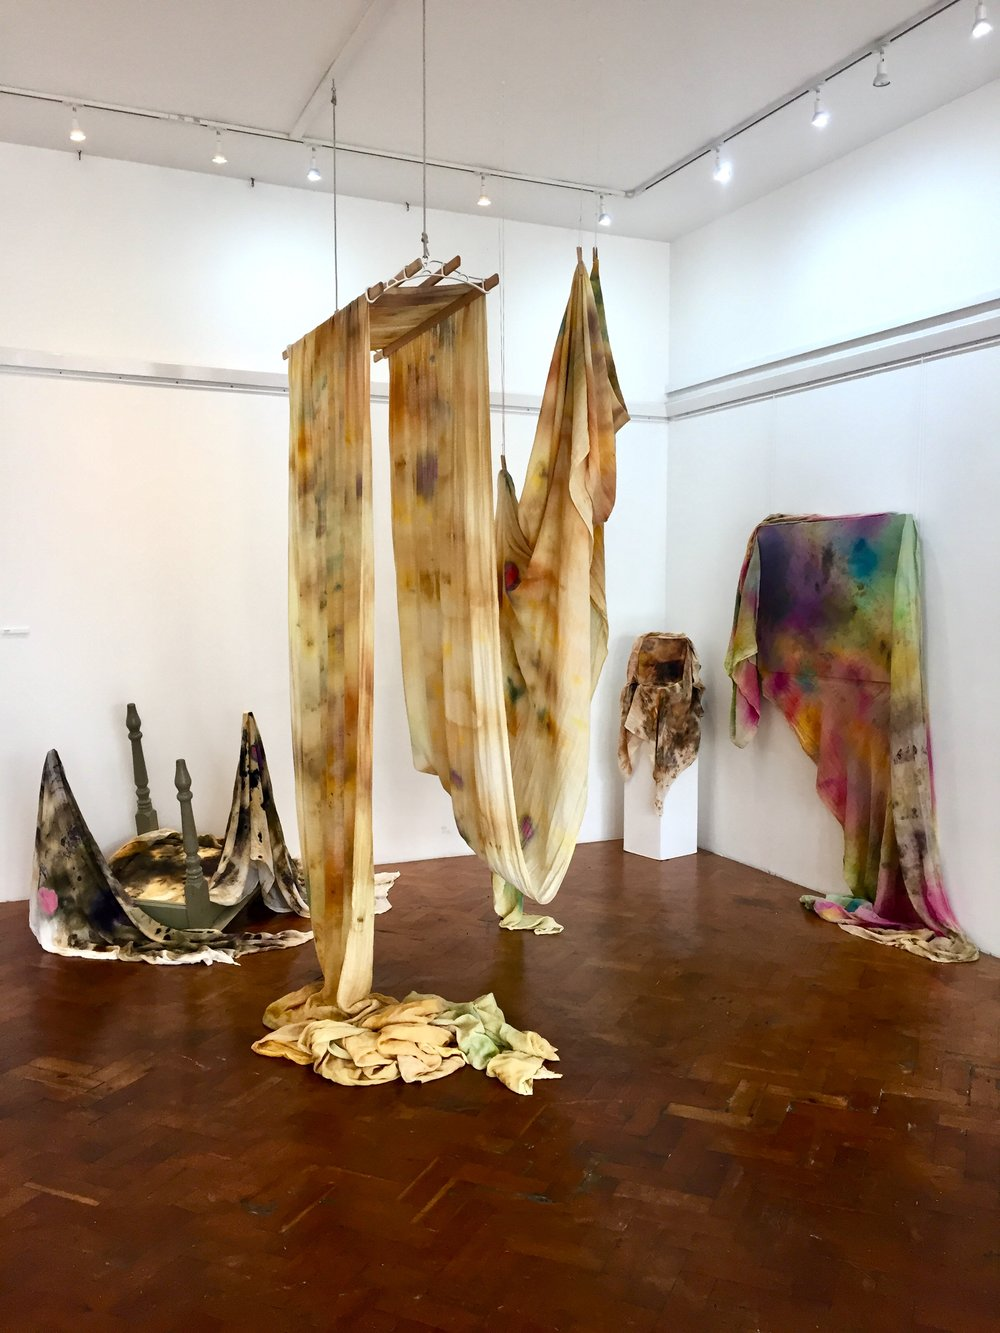 Wavelengths - Group show, 'Wavelengths', Hastings Arts Forum September 2018.From left to right: Time Passes, Mother At The Window, Untitled, A Journey In Process